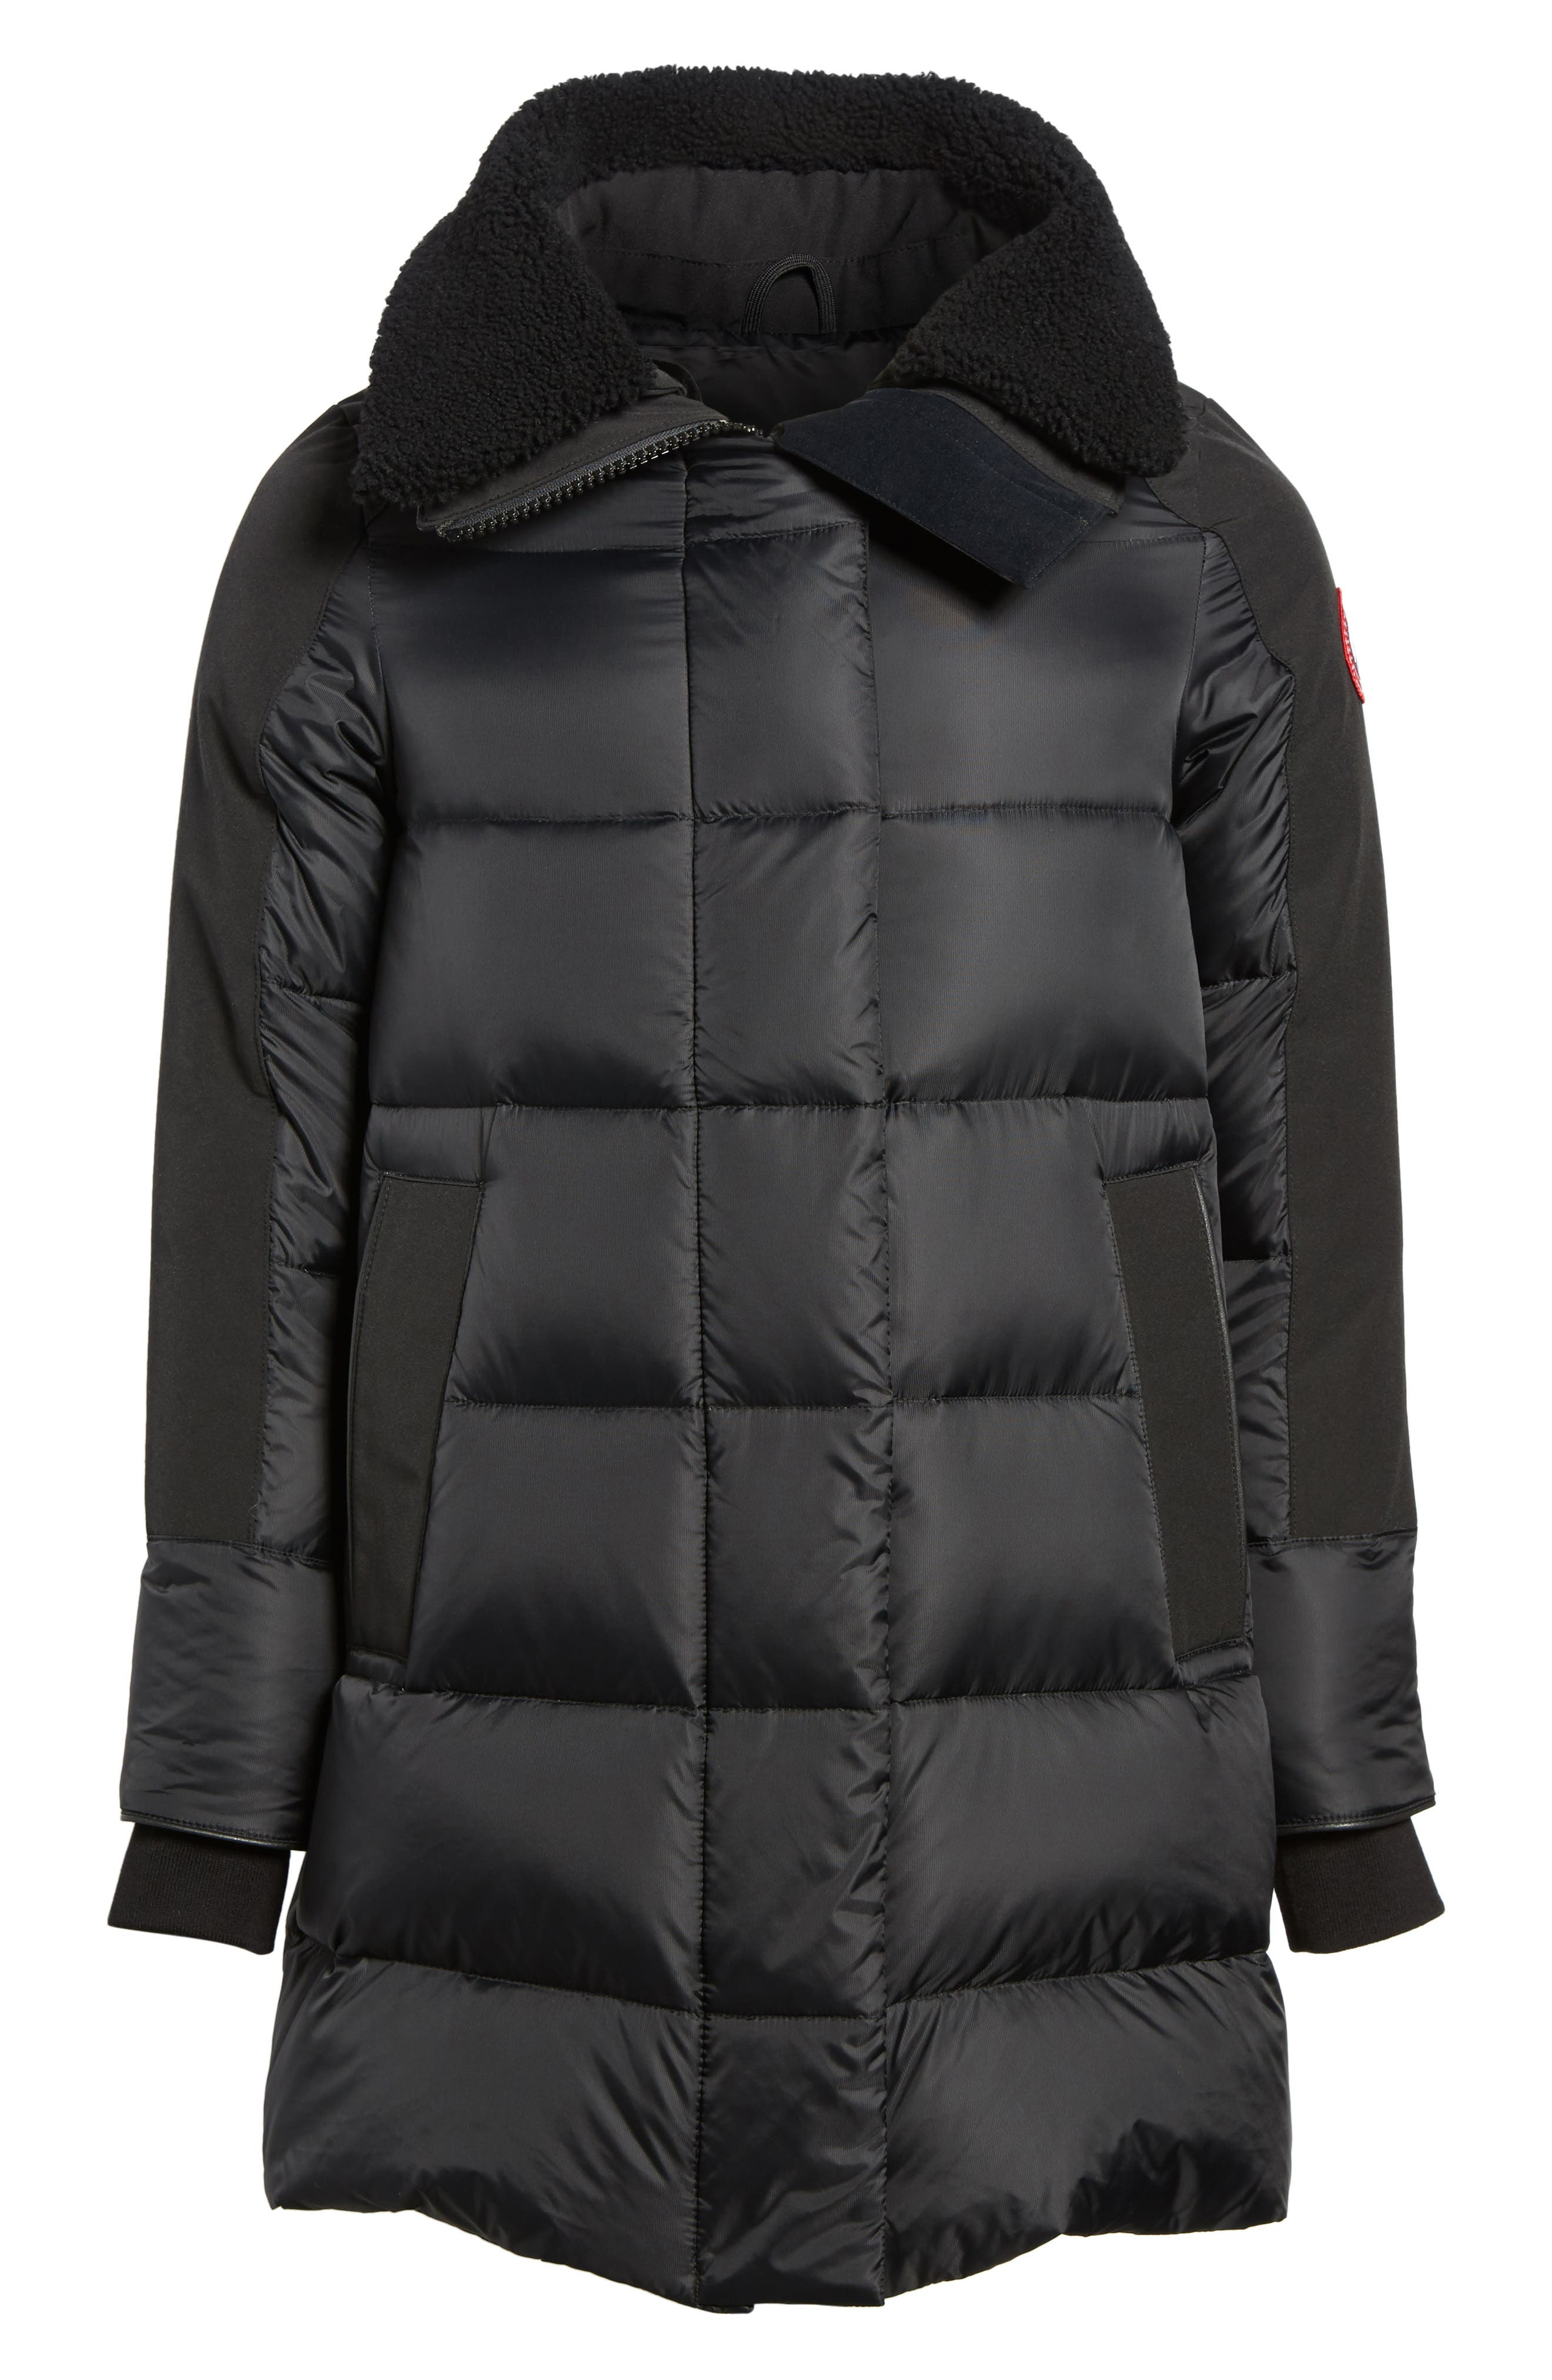 Altona Water Resistant 750-Fill Power Down Parka with Genuine Shearling Collar,                             Alternate thumbnail 6, color,                             Black